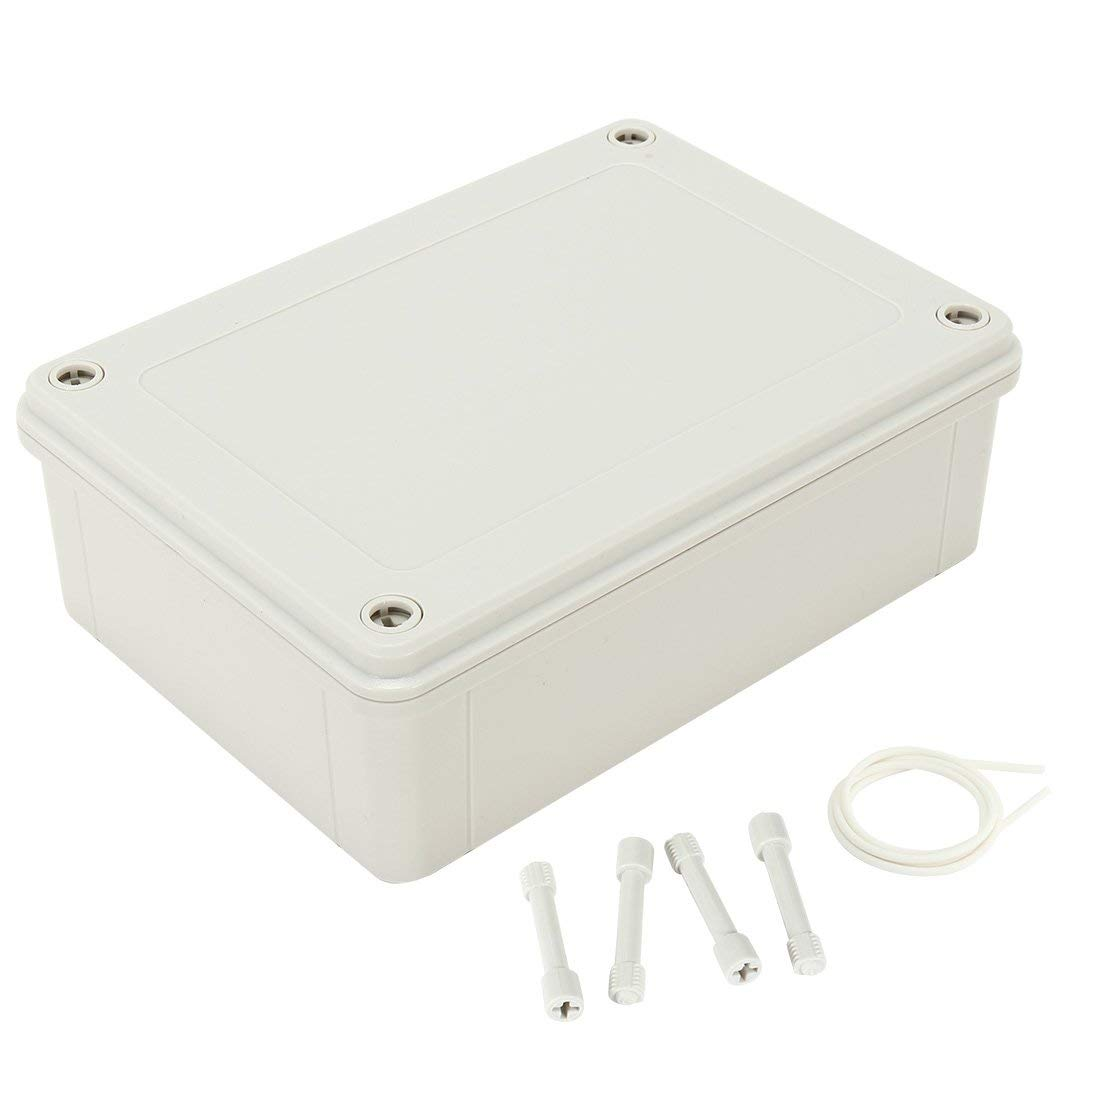 sourcingmap 7.1x5.12x2.3 180mmx130mmx60mm ABS Dustproof IP65 Junction Box Universal Electric Project Enclosure